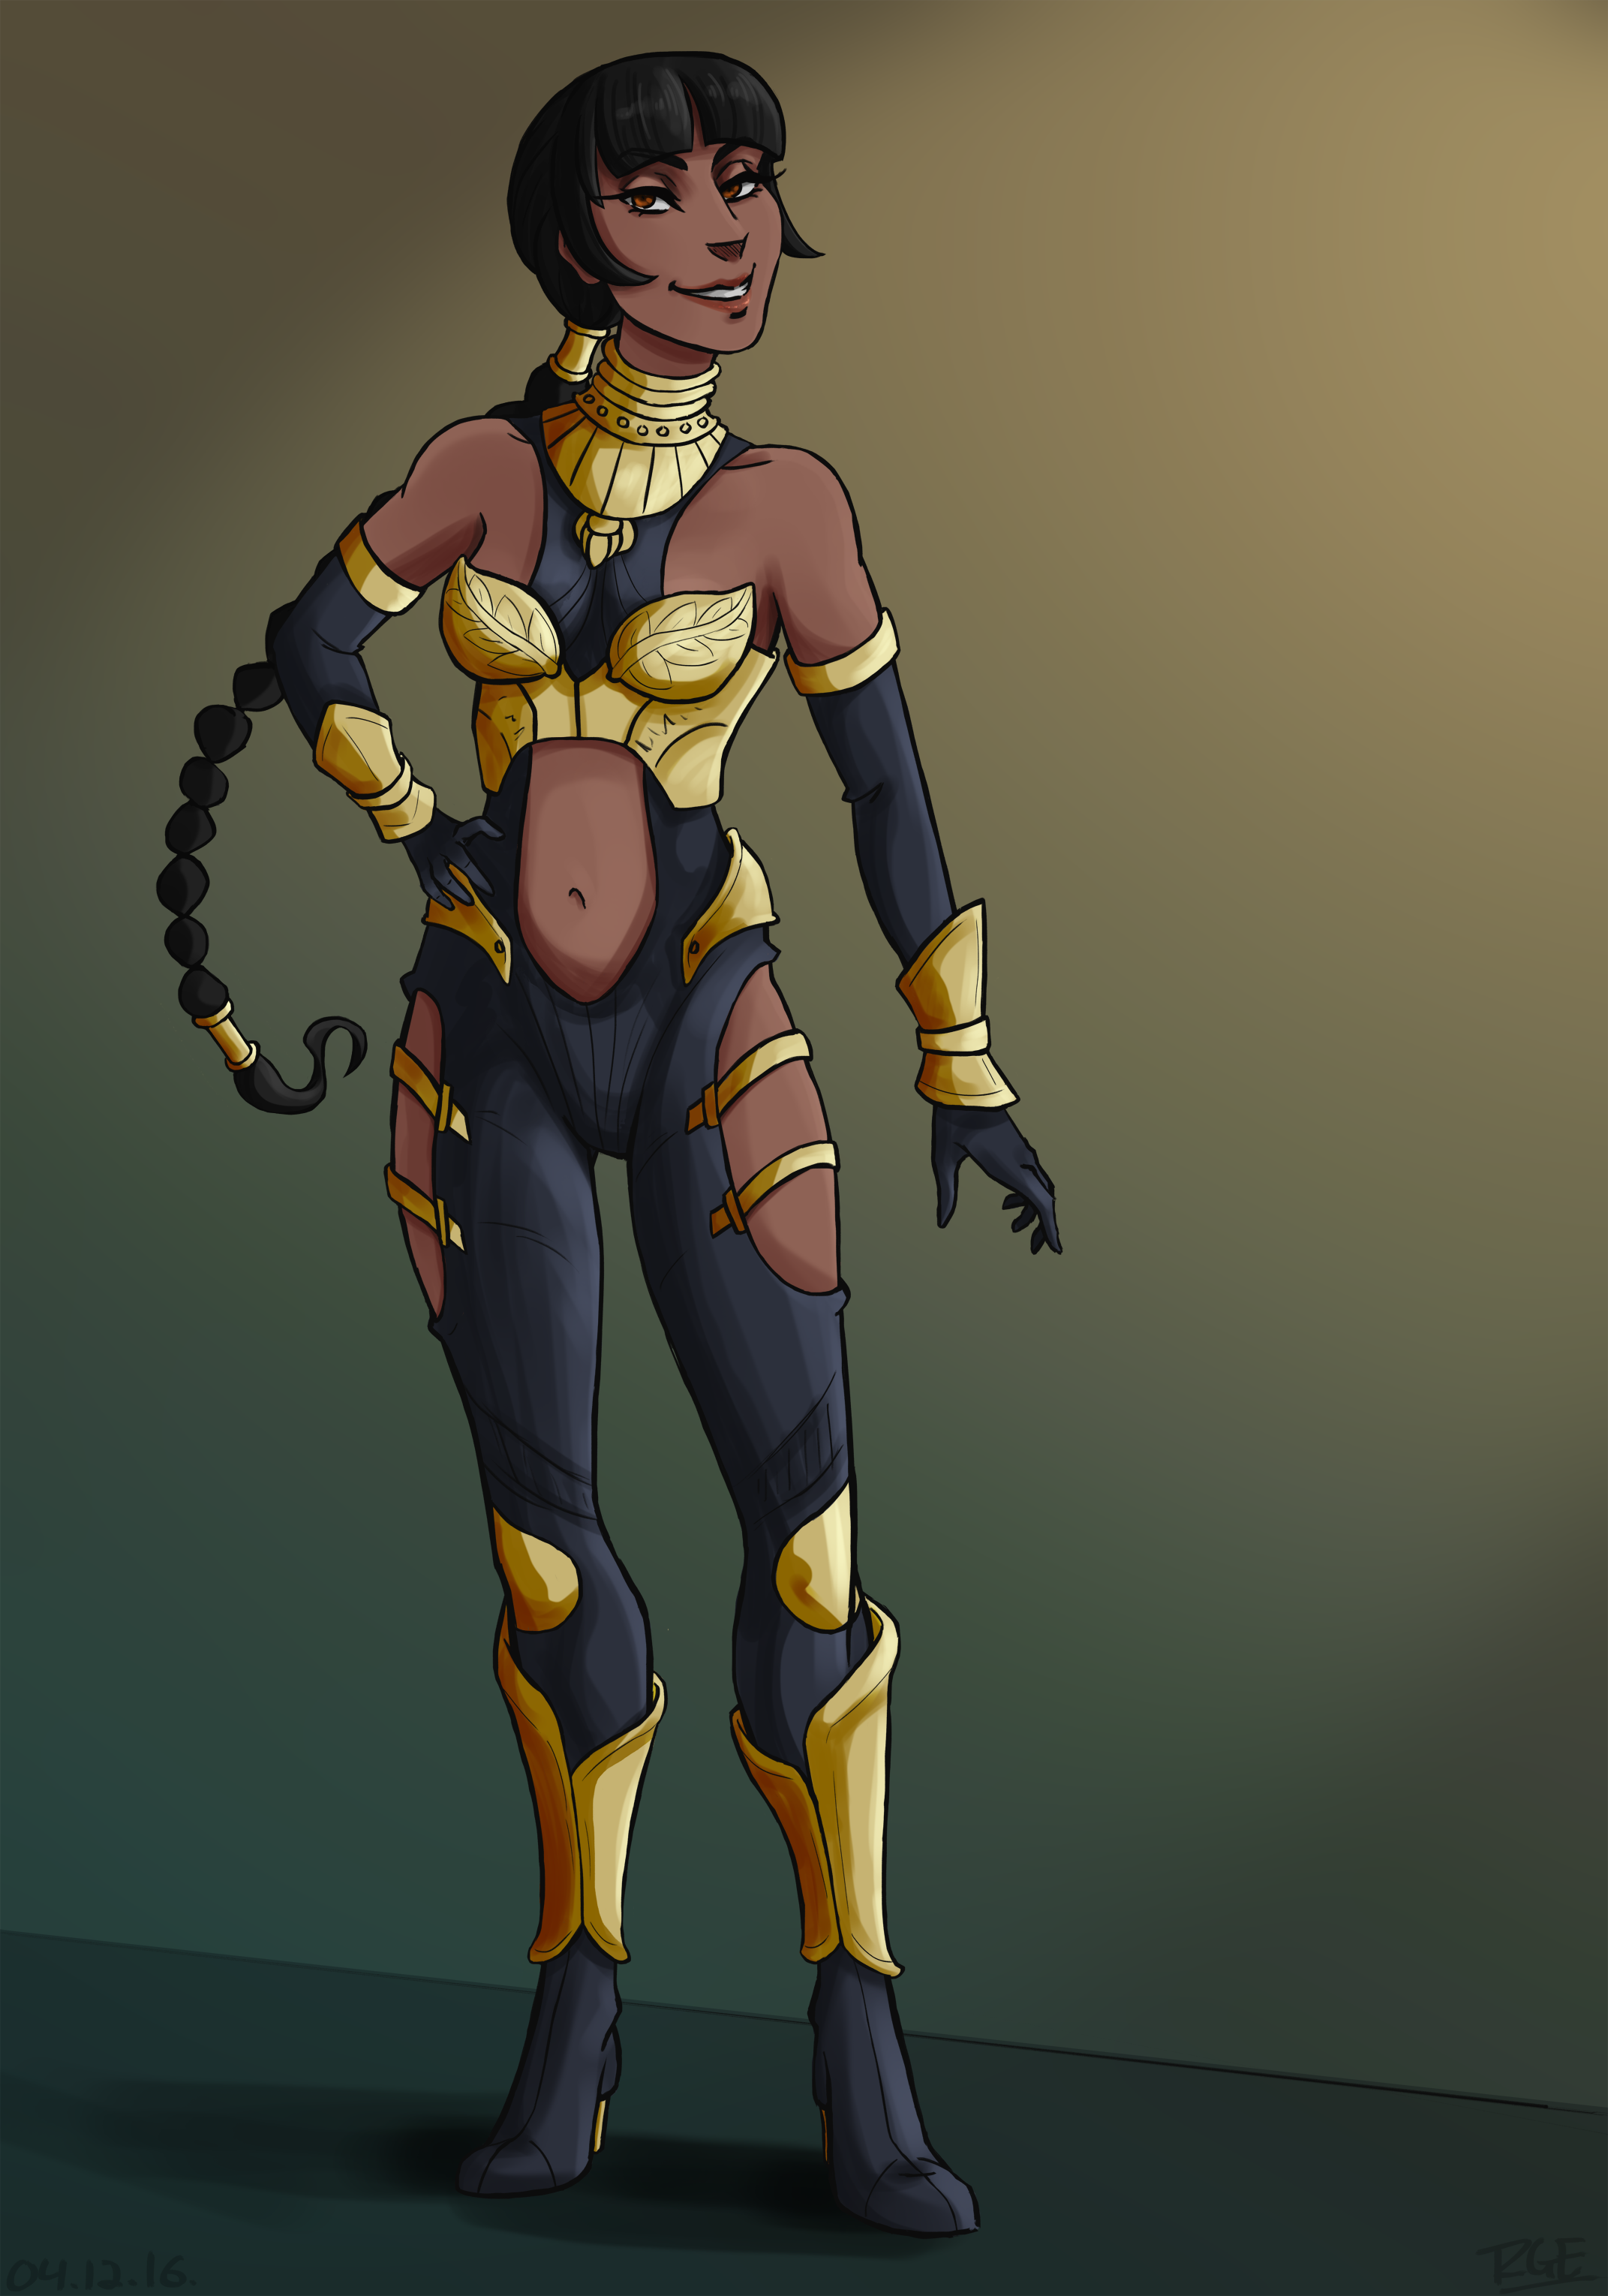 Tanya - MKX Concept Art Outfit [Fanart]